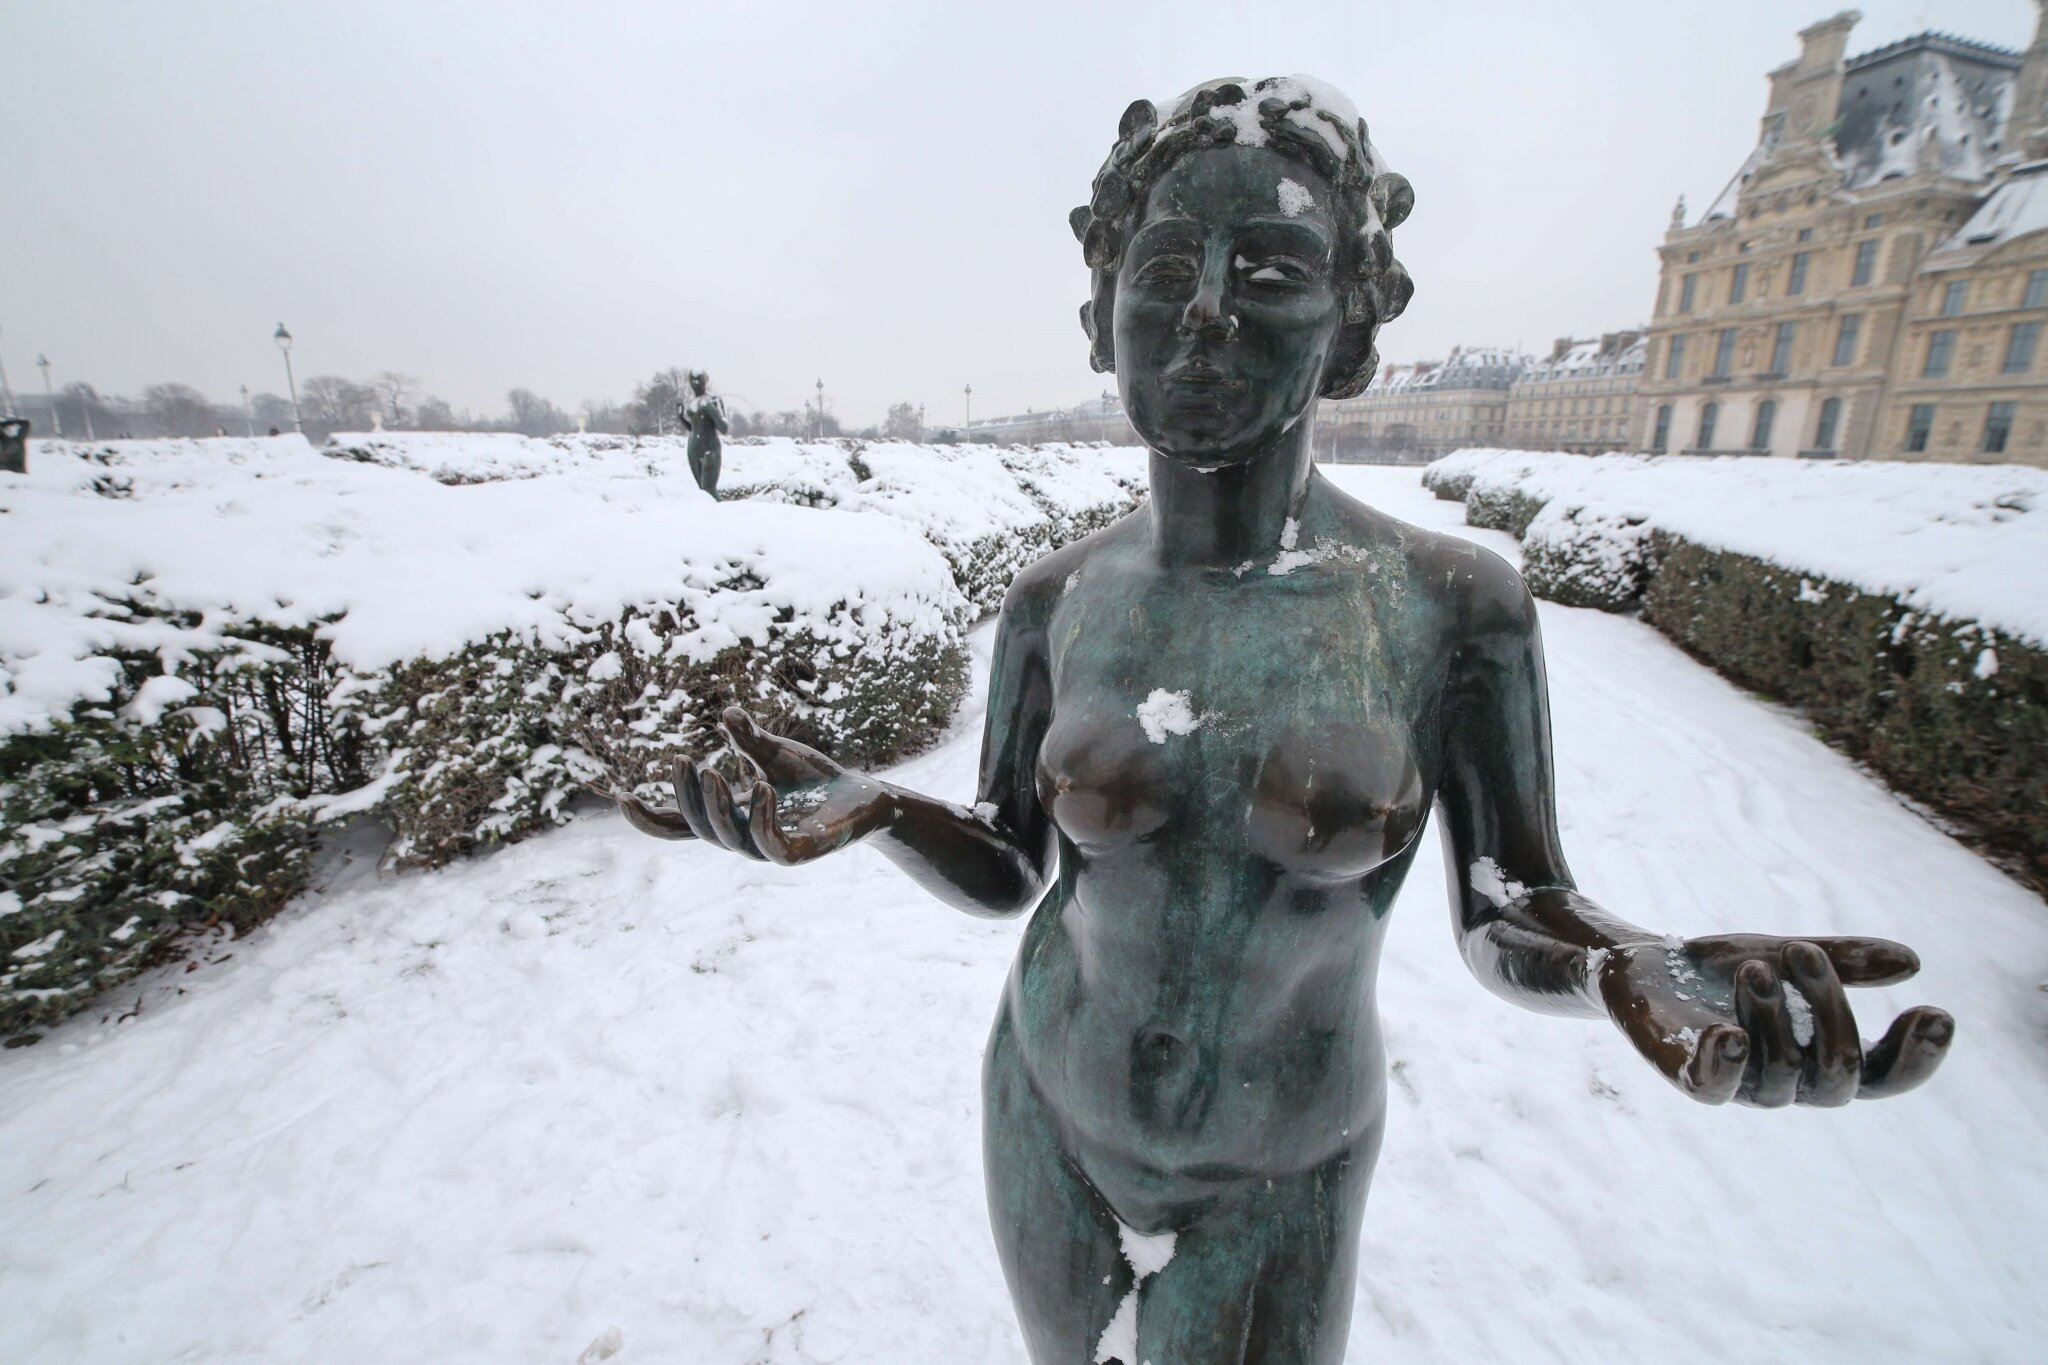 Paris sous la neige. © Photo Michel Stoupak. Sam 19.01.2013, 11:01.